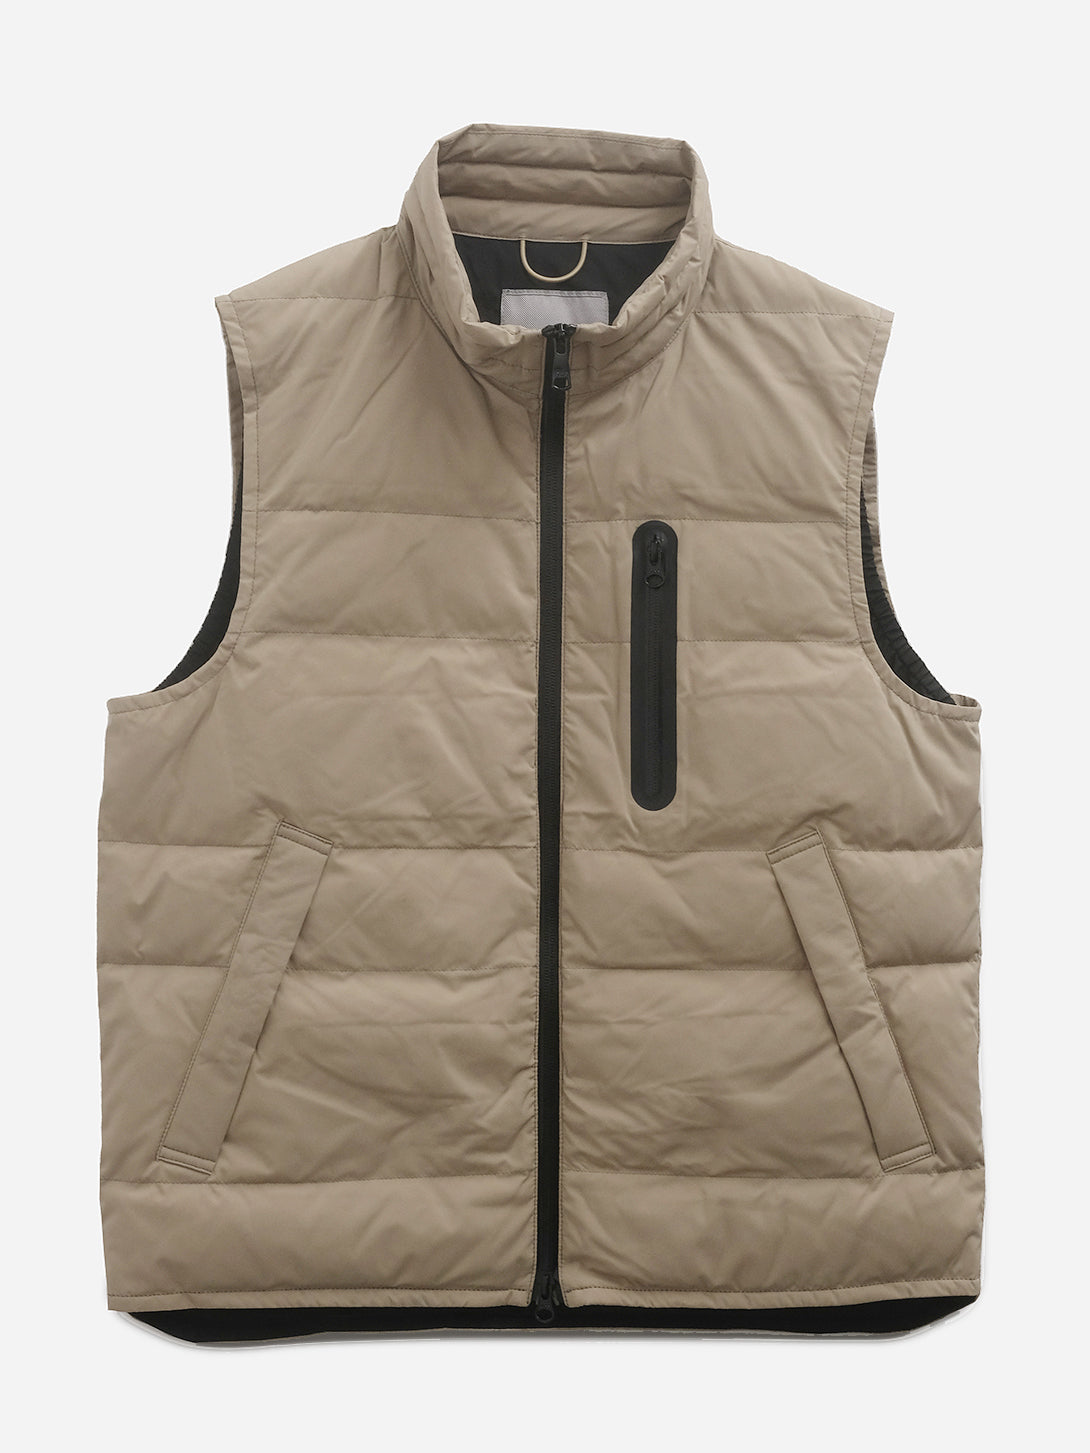 KHAKI vests for men vertex vest ons clothing black friday deals